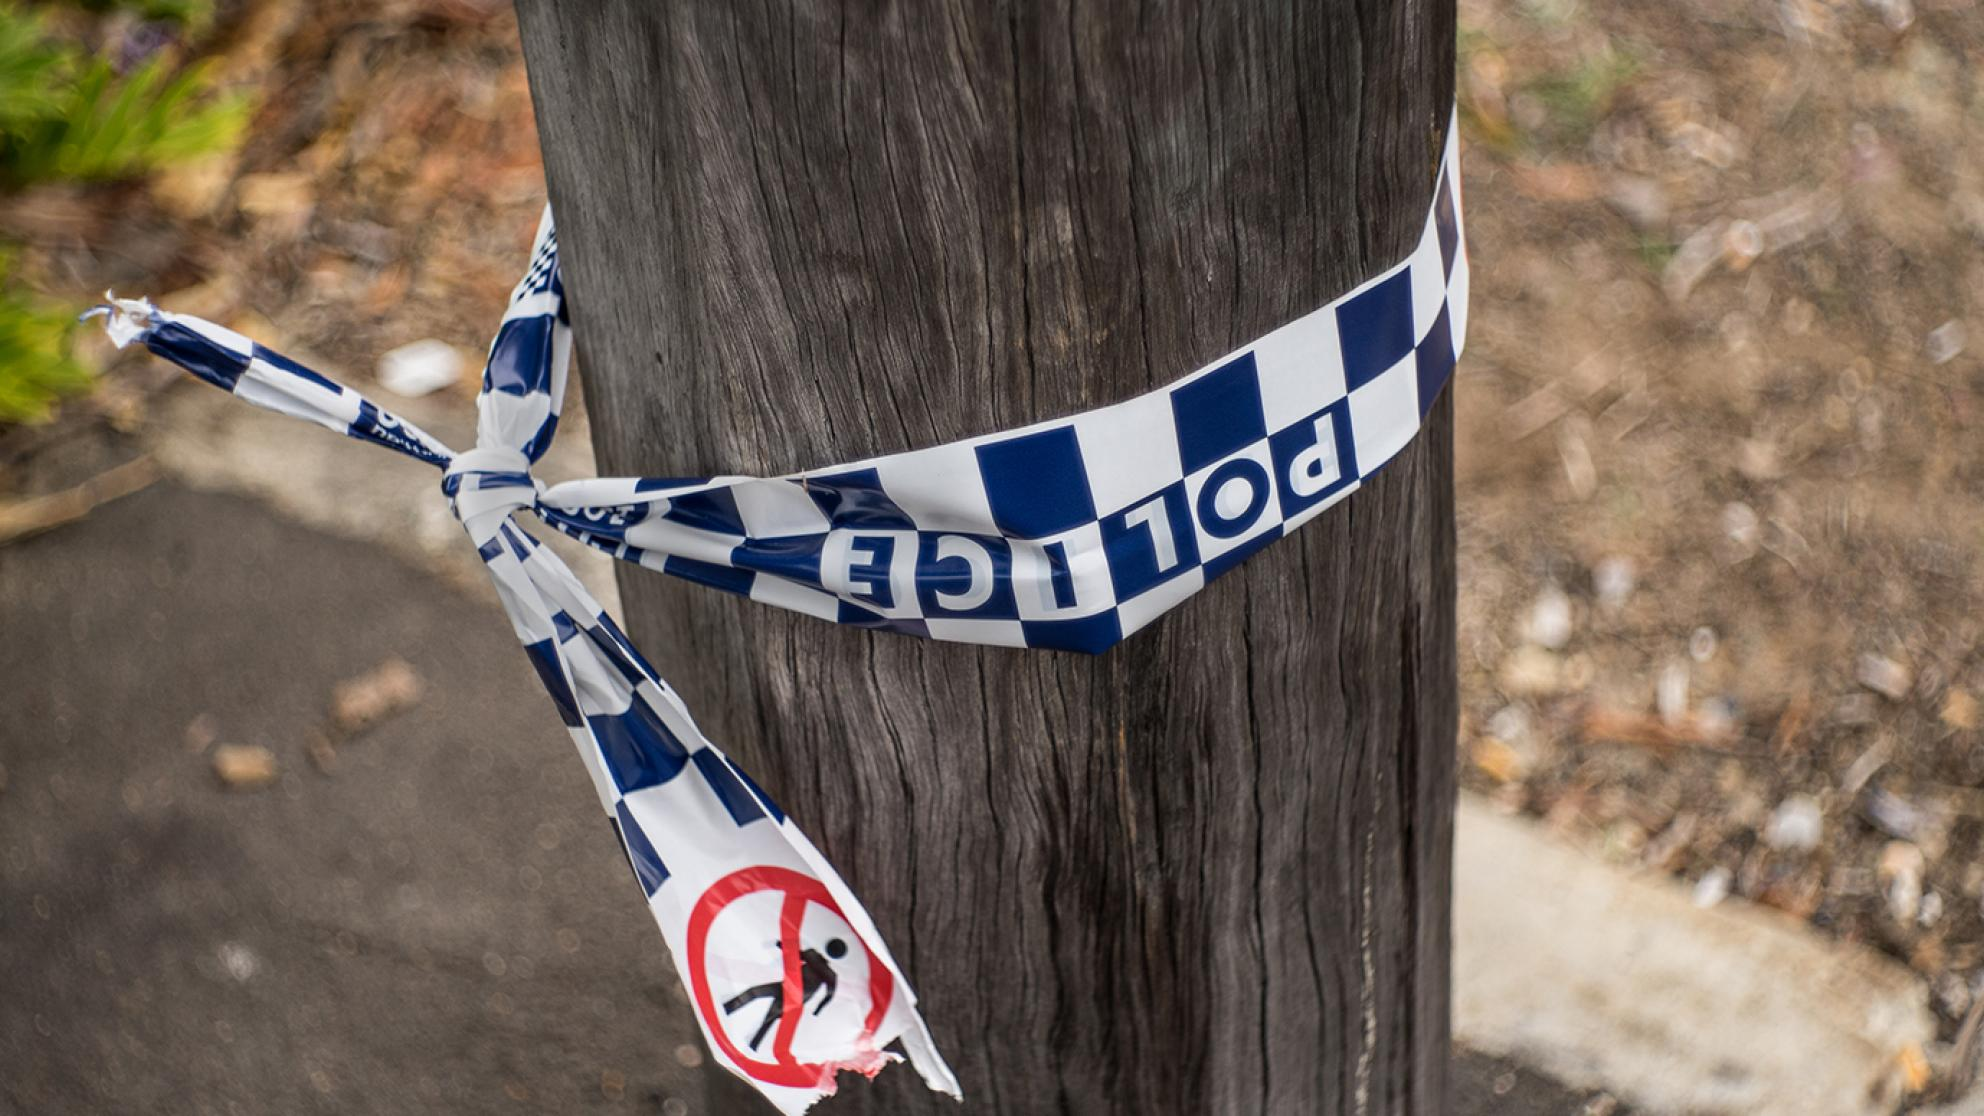 A section of a telegraph pole on a sidewalk with some blue and white chequered police tape tied around it.